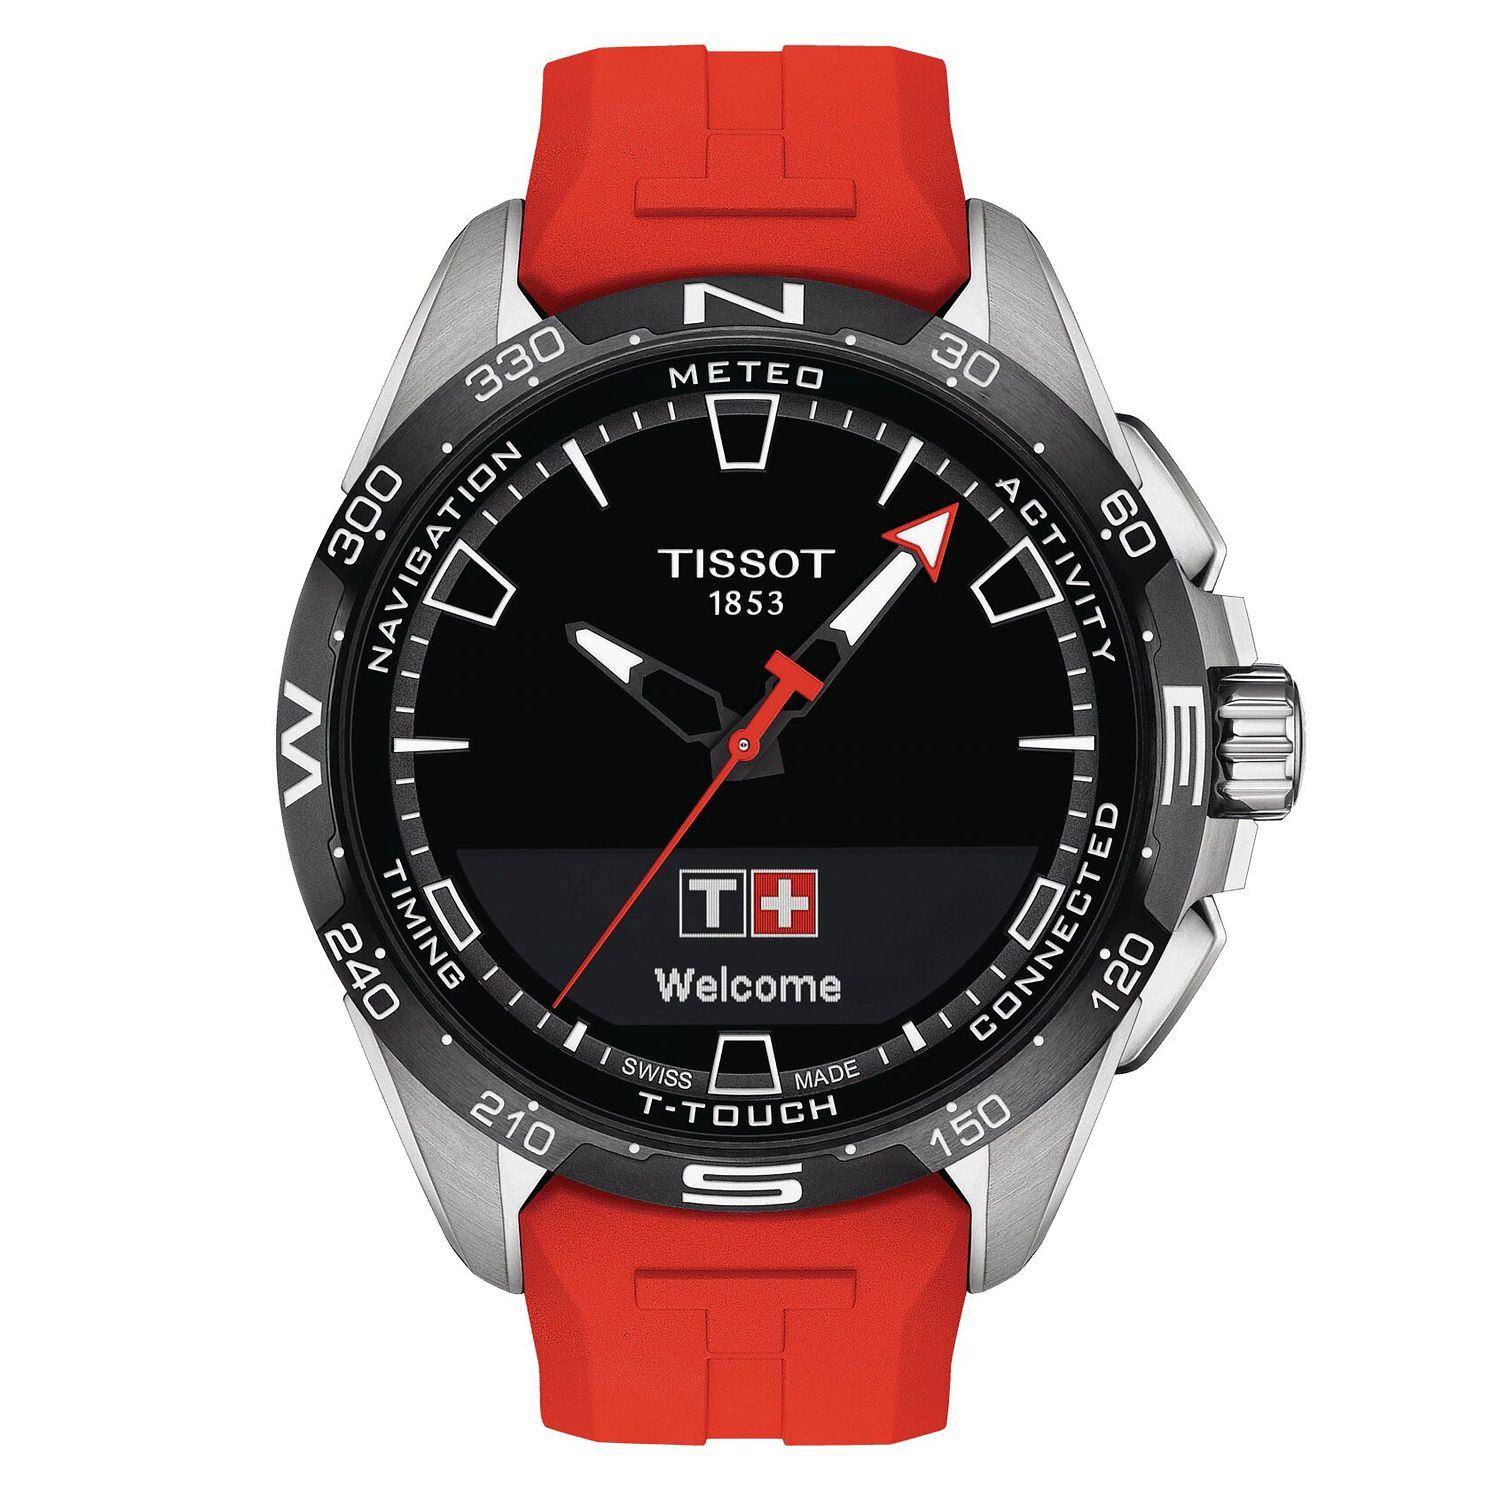 Tissot T-Touch Connect Solar Red Rubber Strap Watch - Product number 1199579